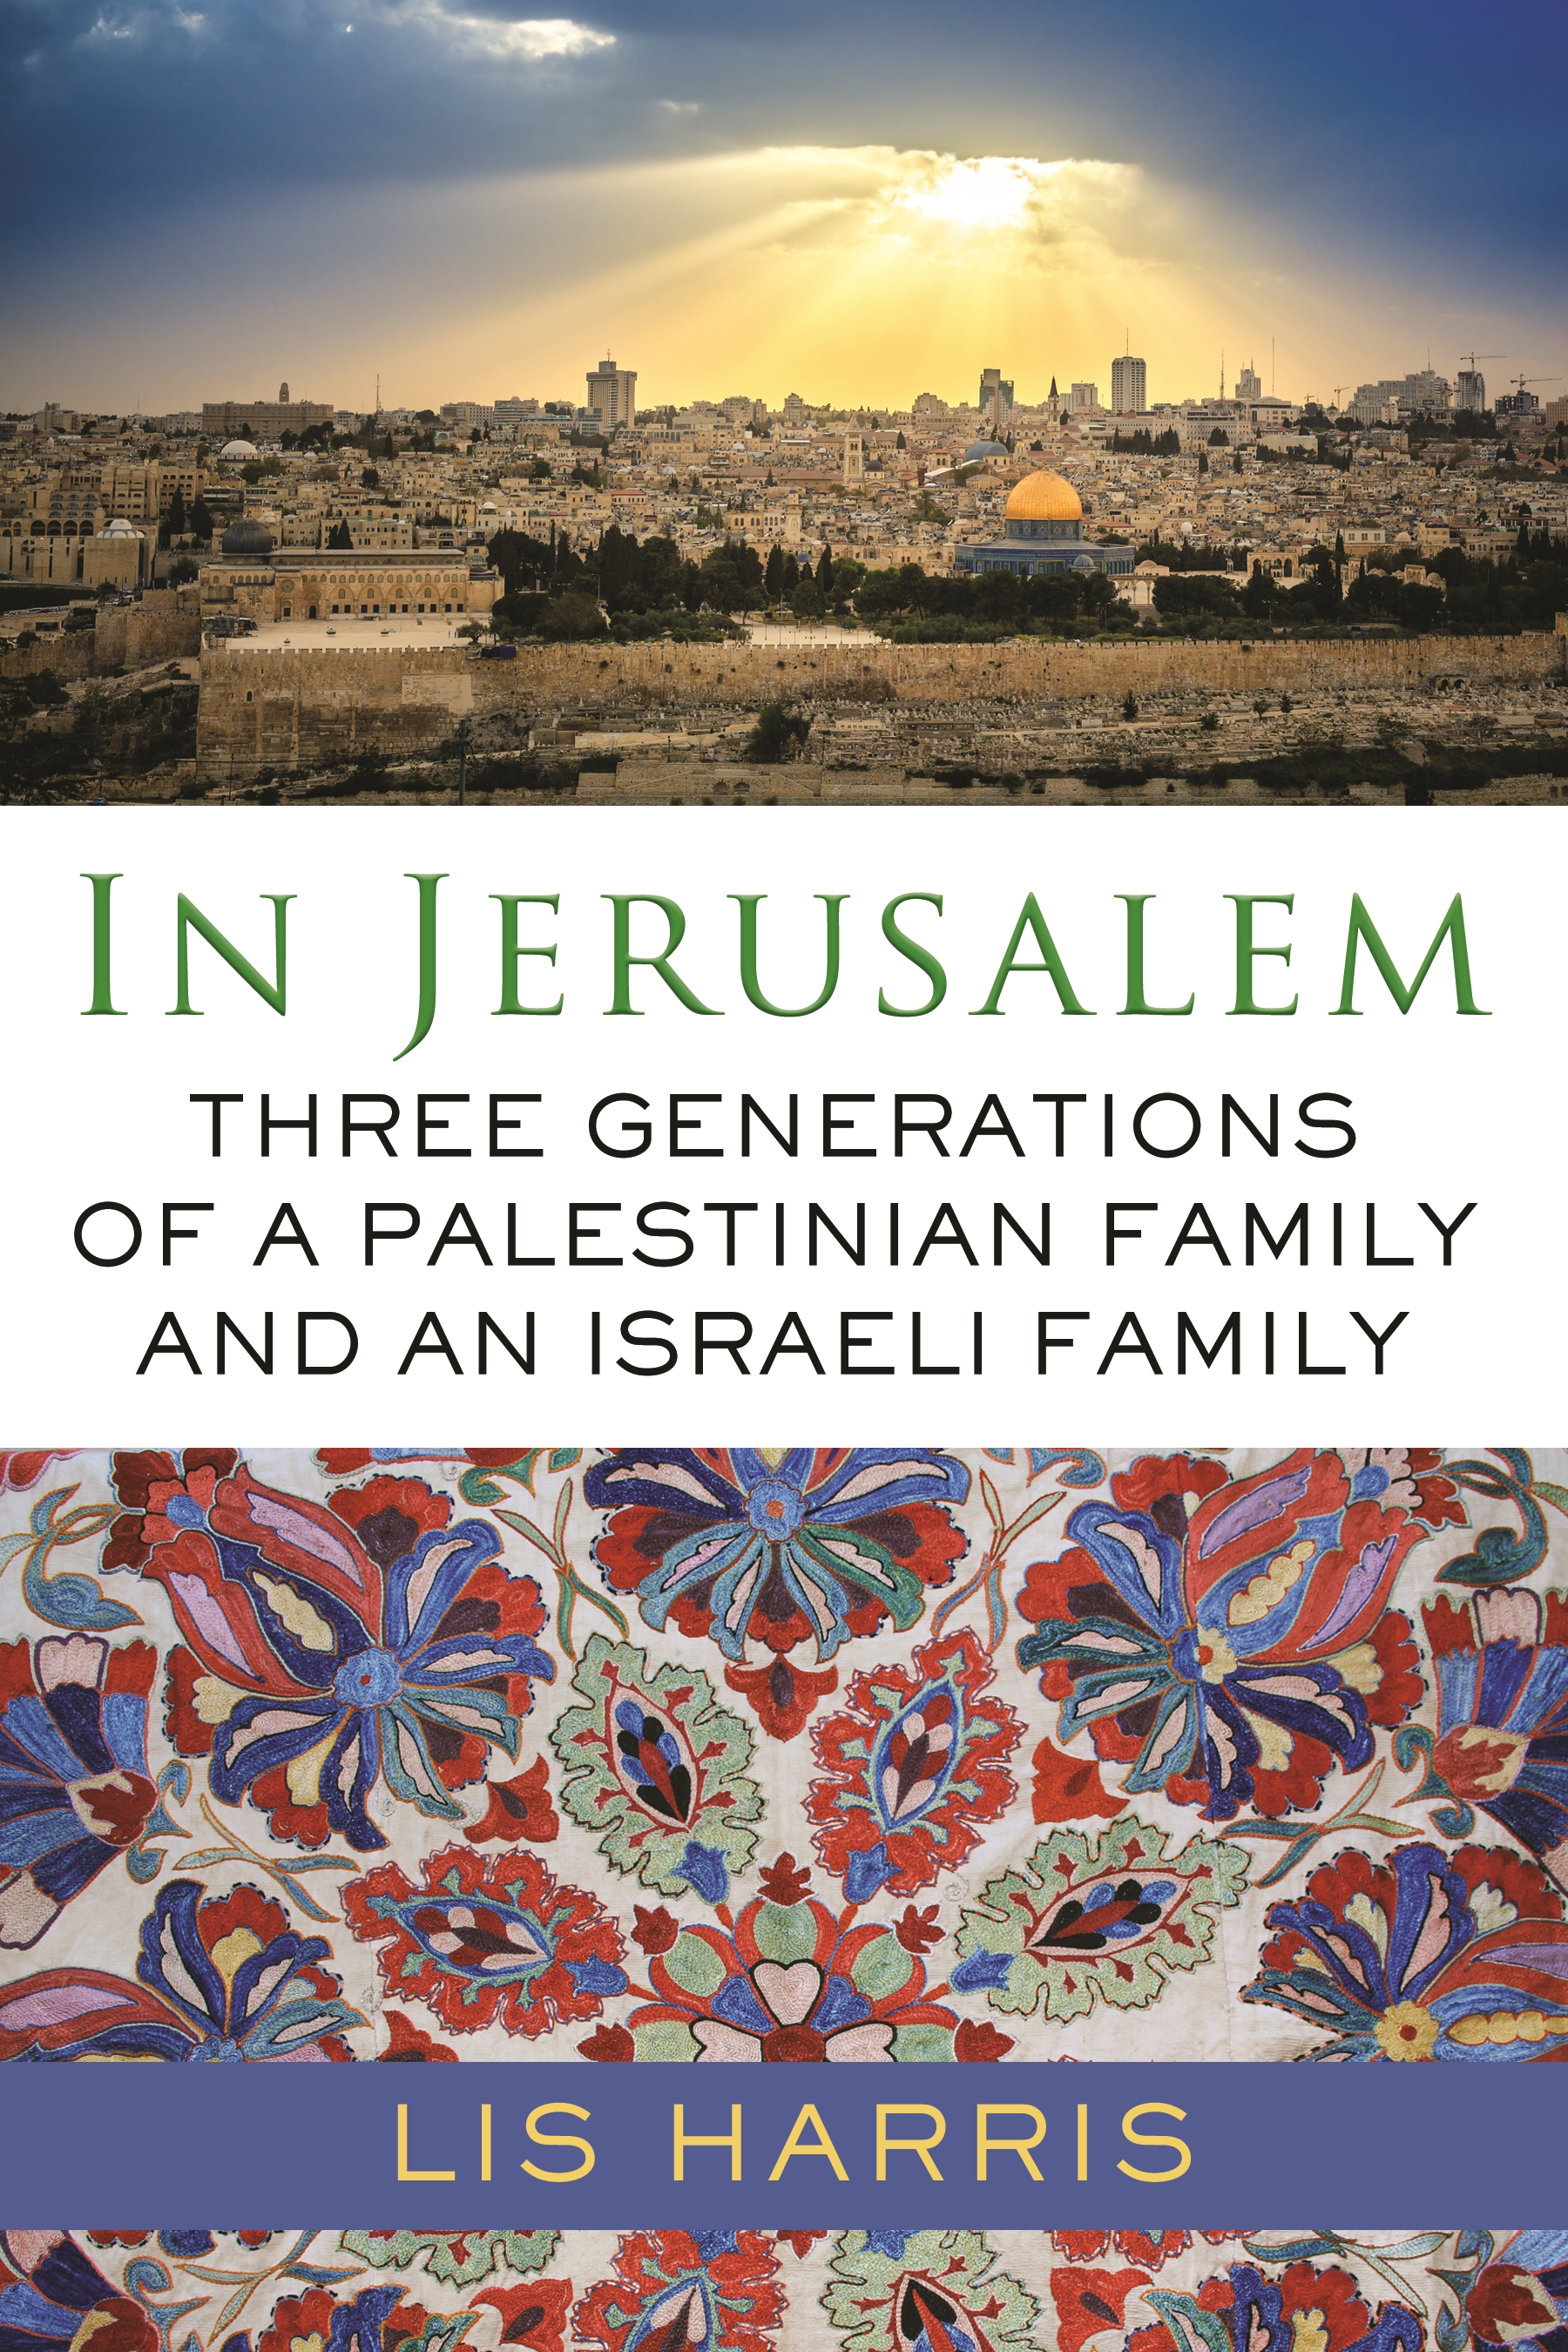 Book Launch: In Jerusalem by Lis Harris